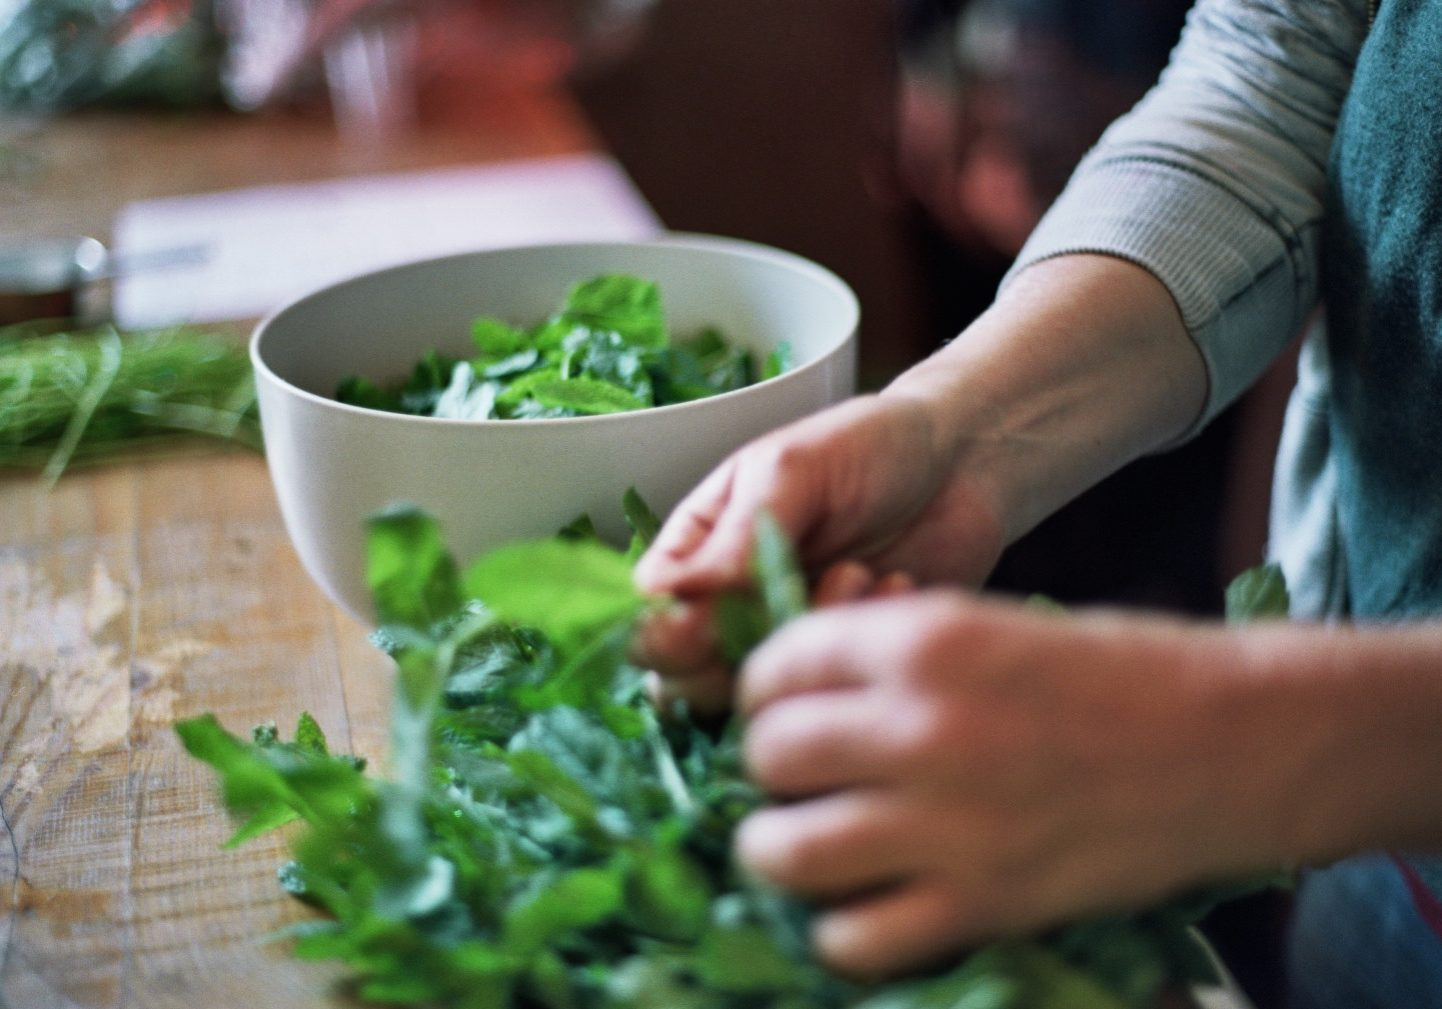 Hands plucking what looks like basil and putting it into a round white bowl on top of a wooden countertop.